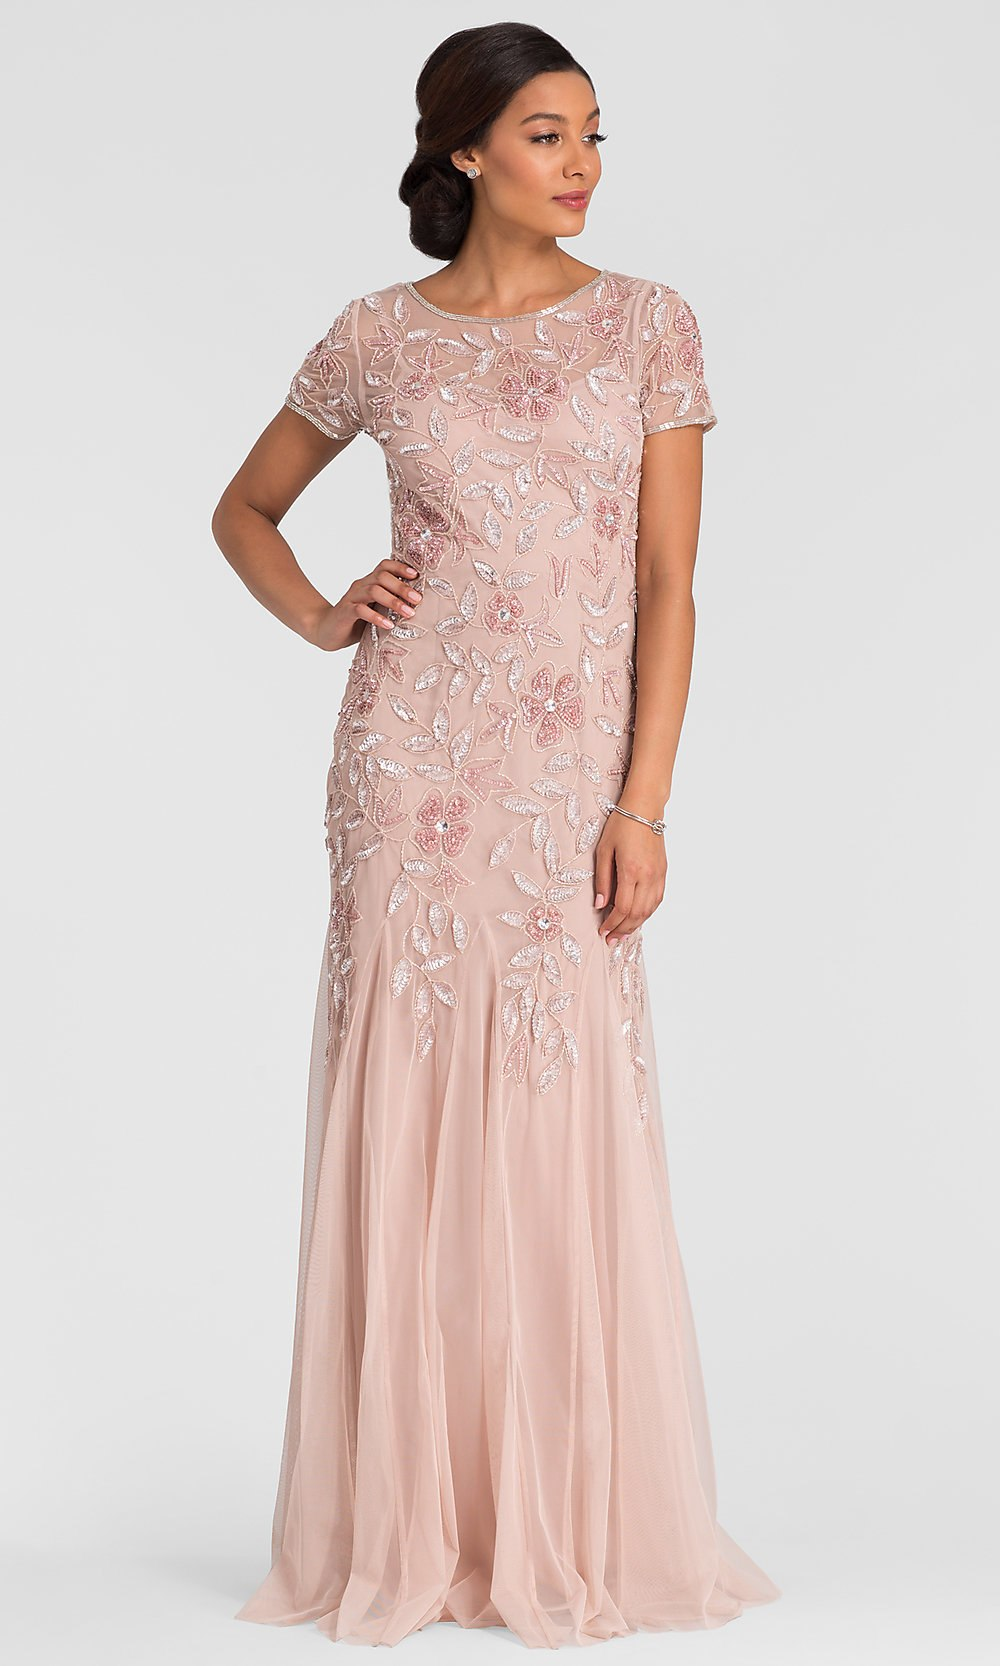 Adrianna Papell Floral Beaded Godet Gown - Blush Pink